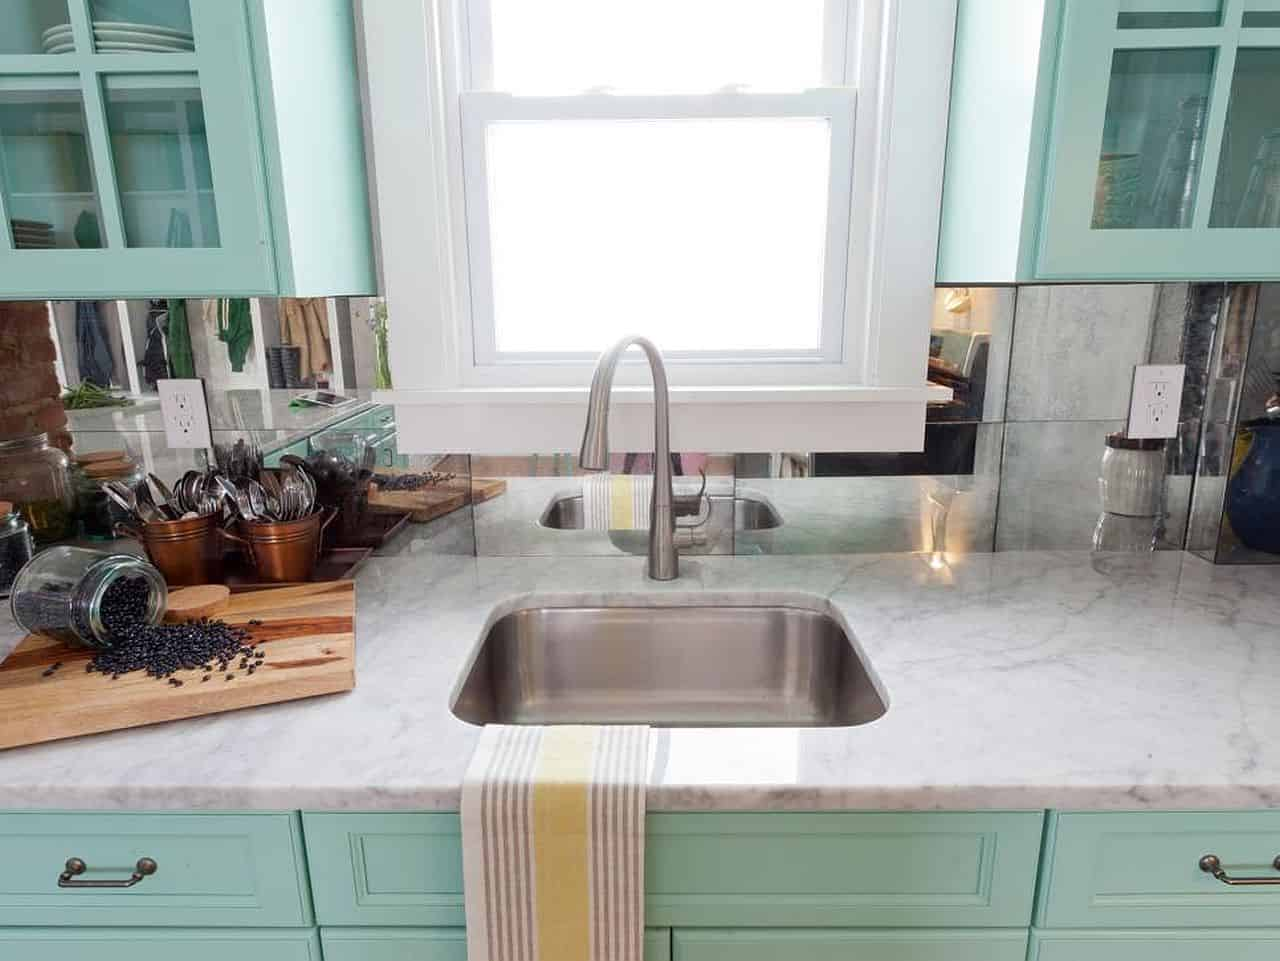 Mint with Carrara Marble countertop and Mirrored tile backsplash